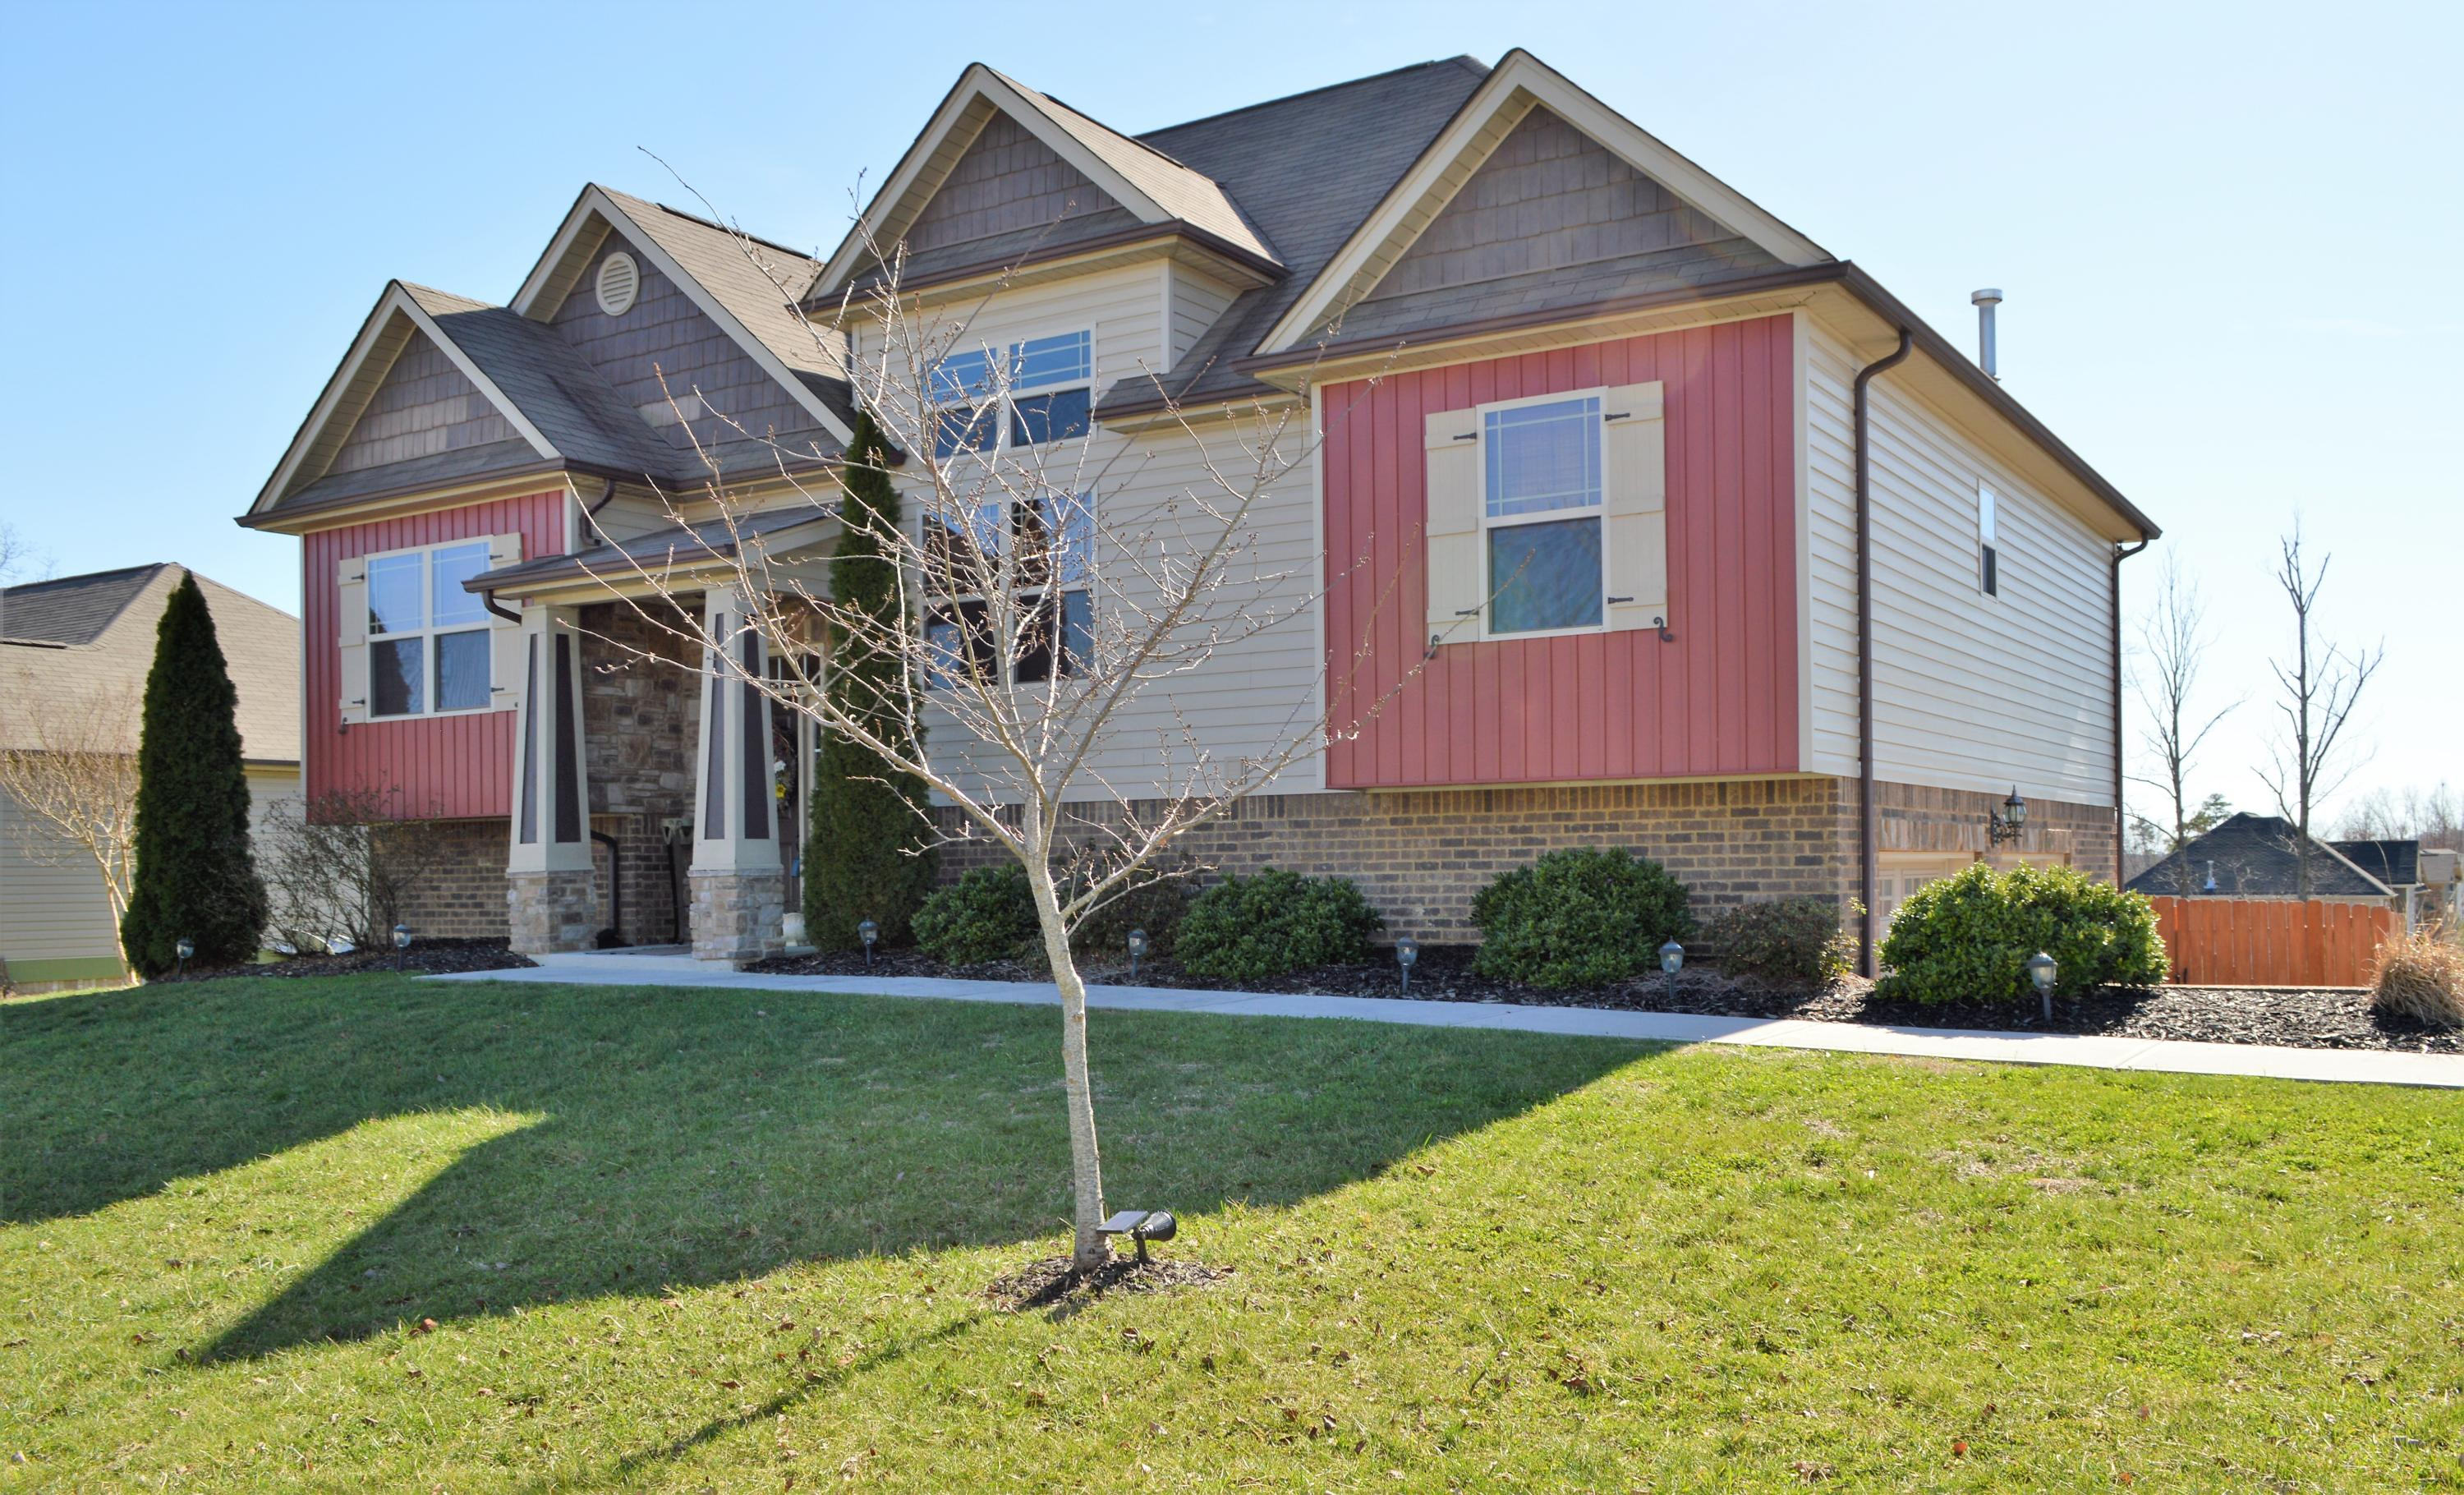 597 Sir Carlos Dr, Soddy Daisy, TN 37379